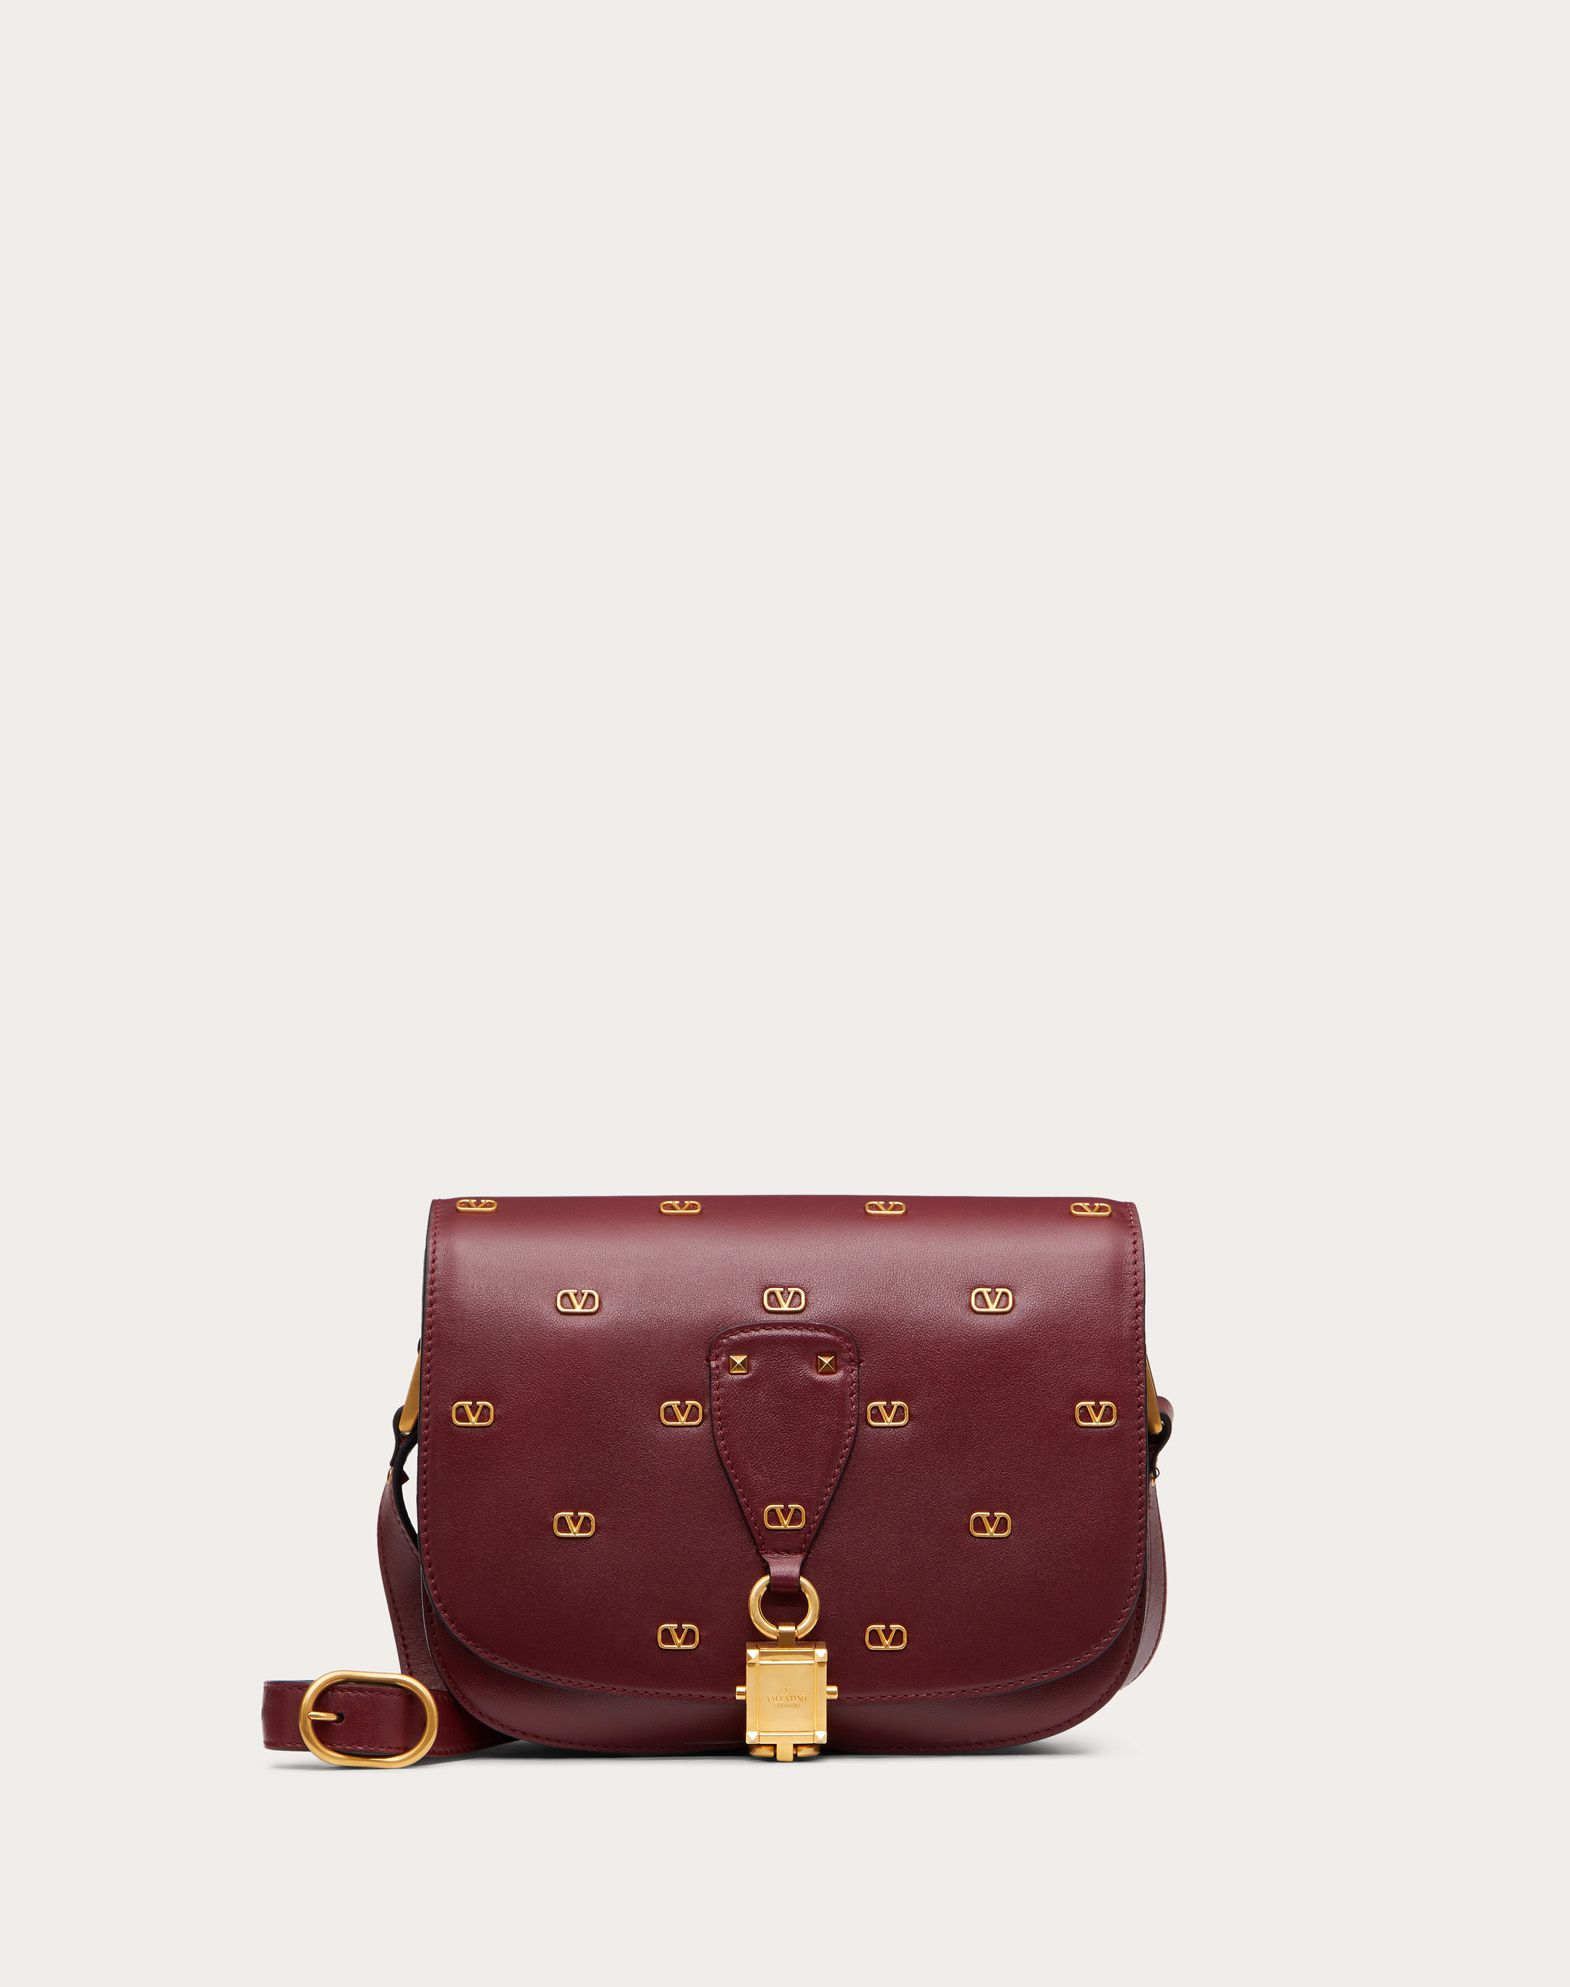 VLOCKER Calfskin Crossbody Bag with Mini Metal Logos